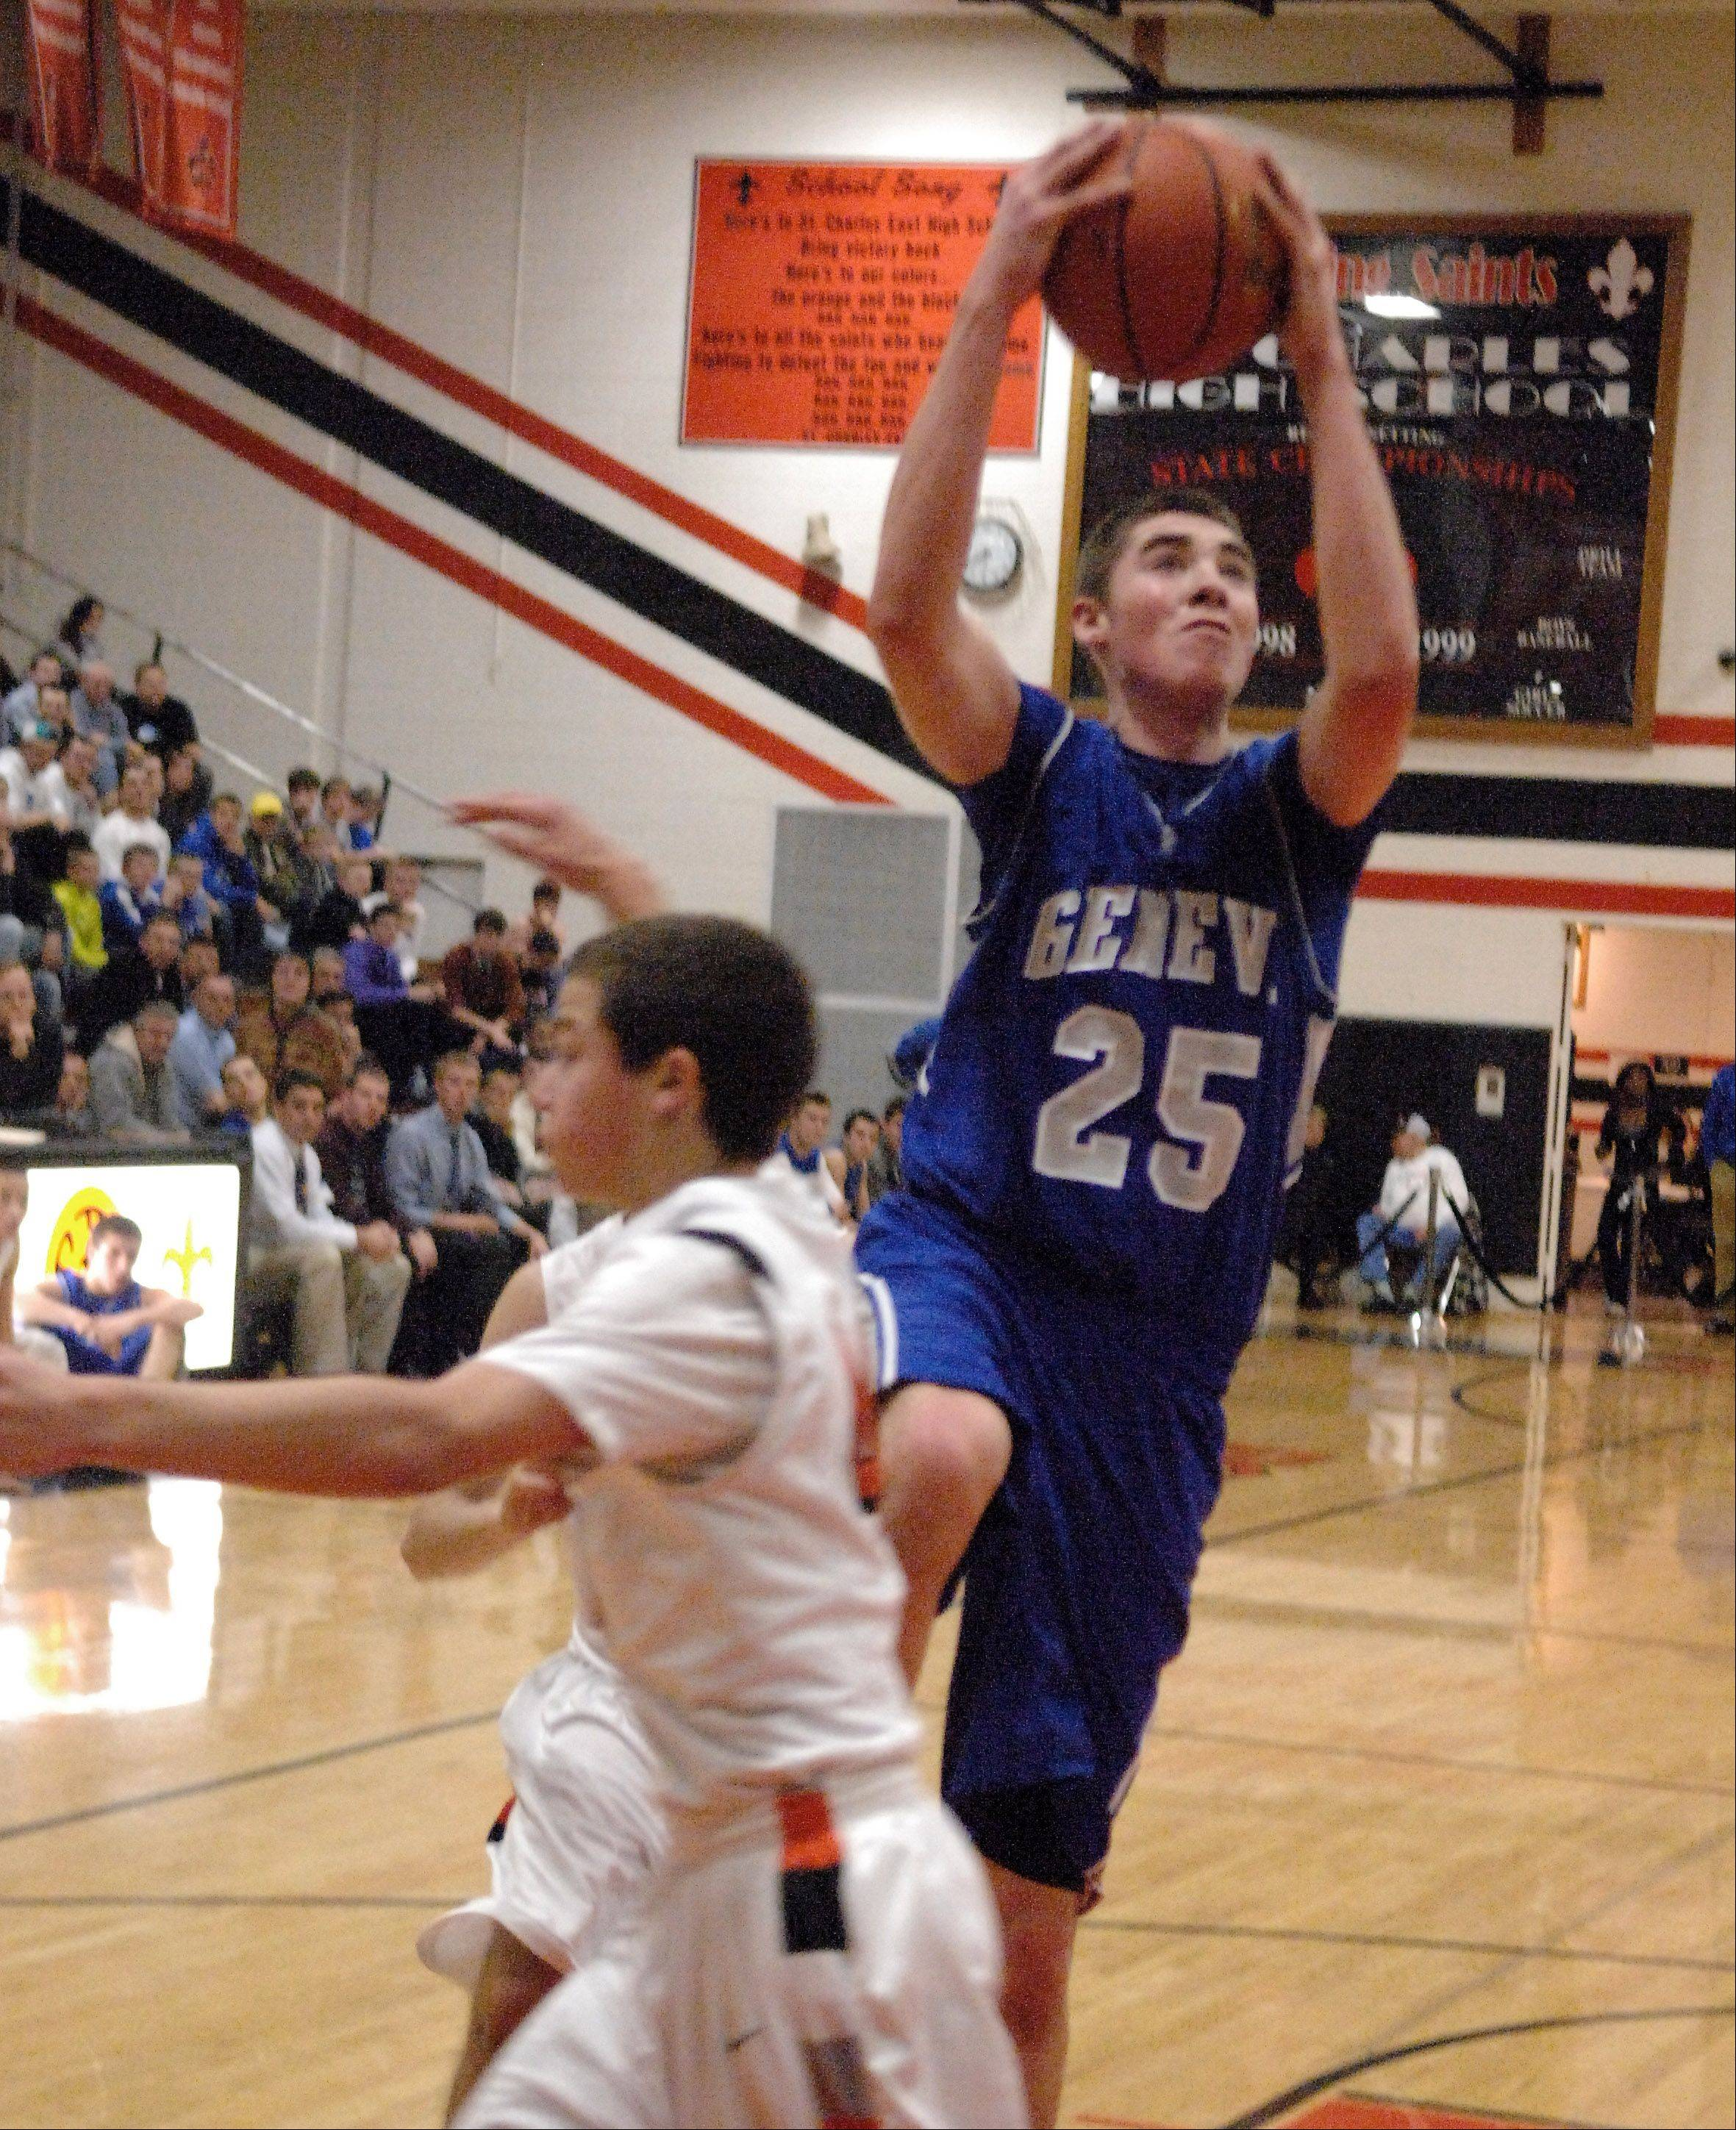 Images from the Geneva vs. St. Charles East boys basketball game Friday, December 7, 2012.